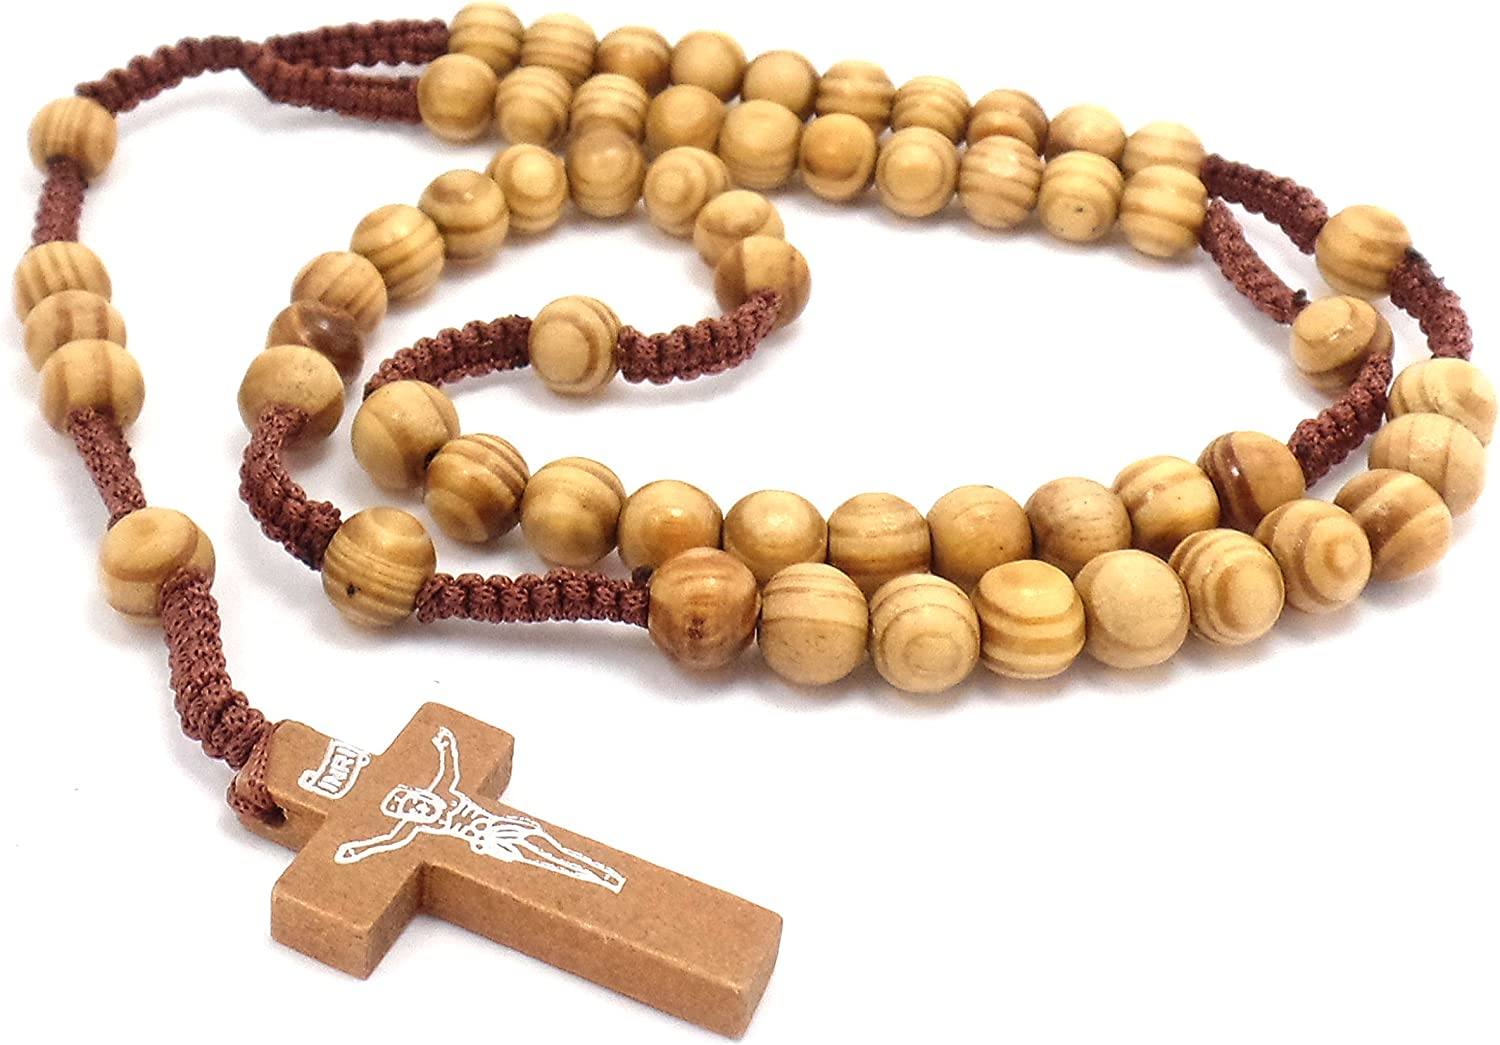 Beautiful Handmade El Paso Mall Macrame Rosary Necklace Light - Cord Brown New arrival an